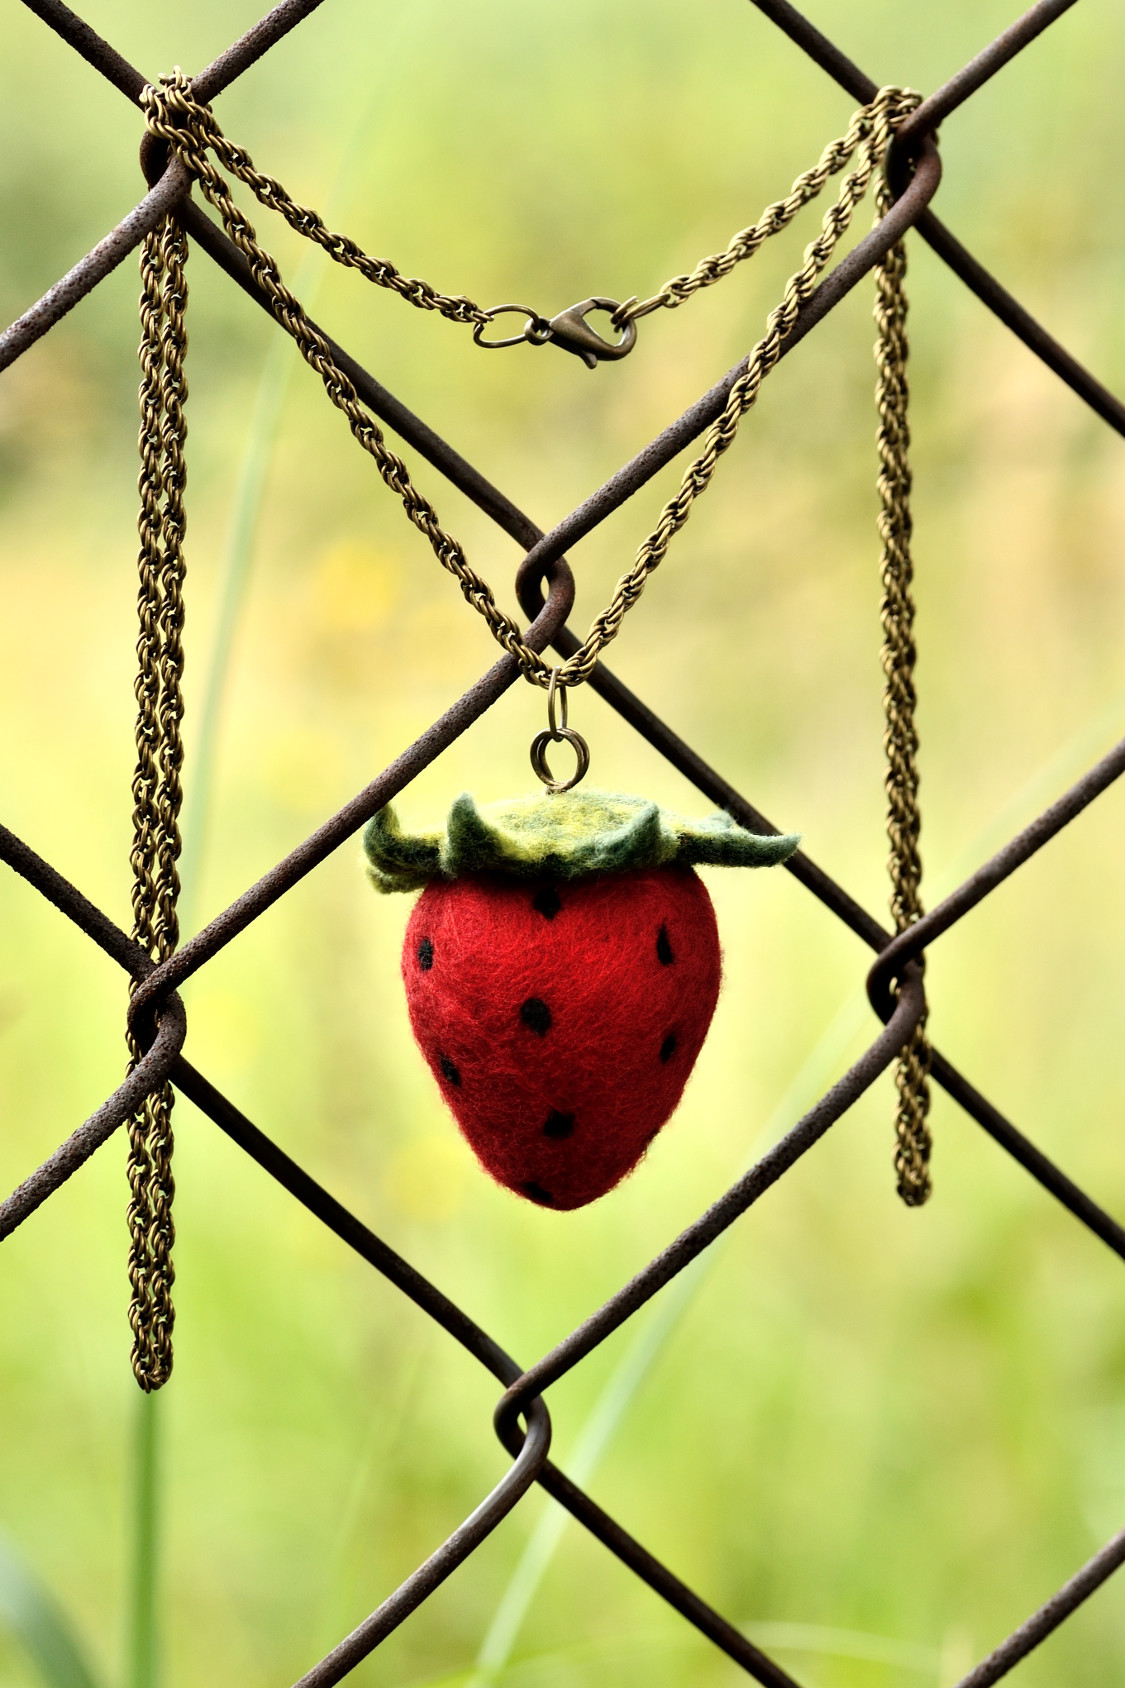 Strawberry pendant with felted fruit and long chain